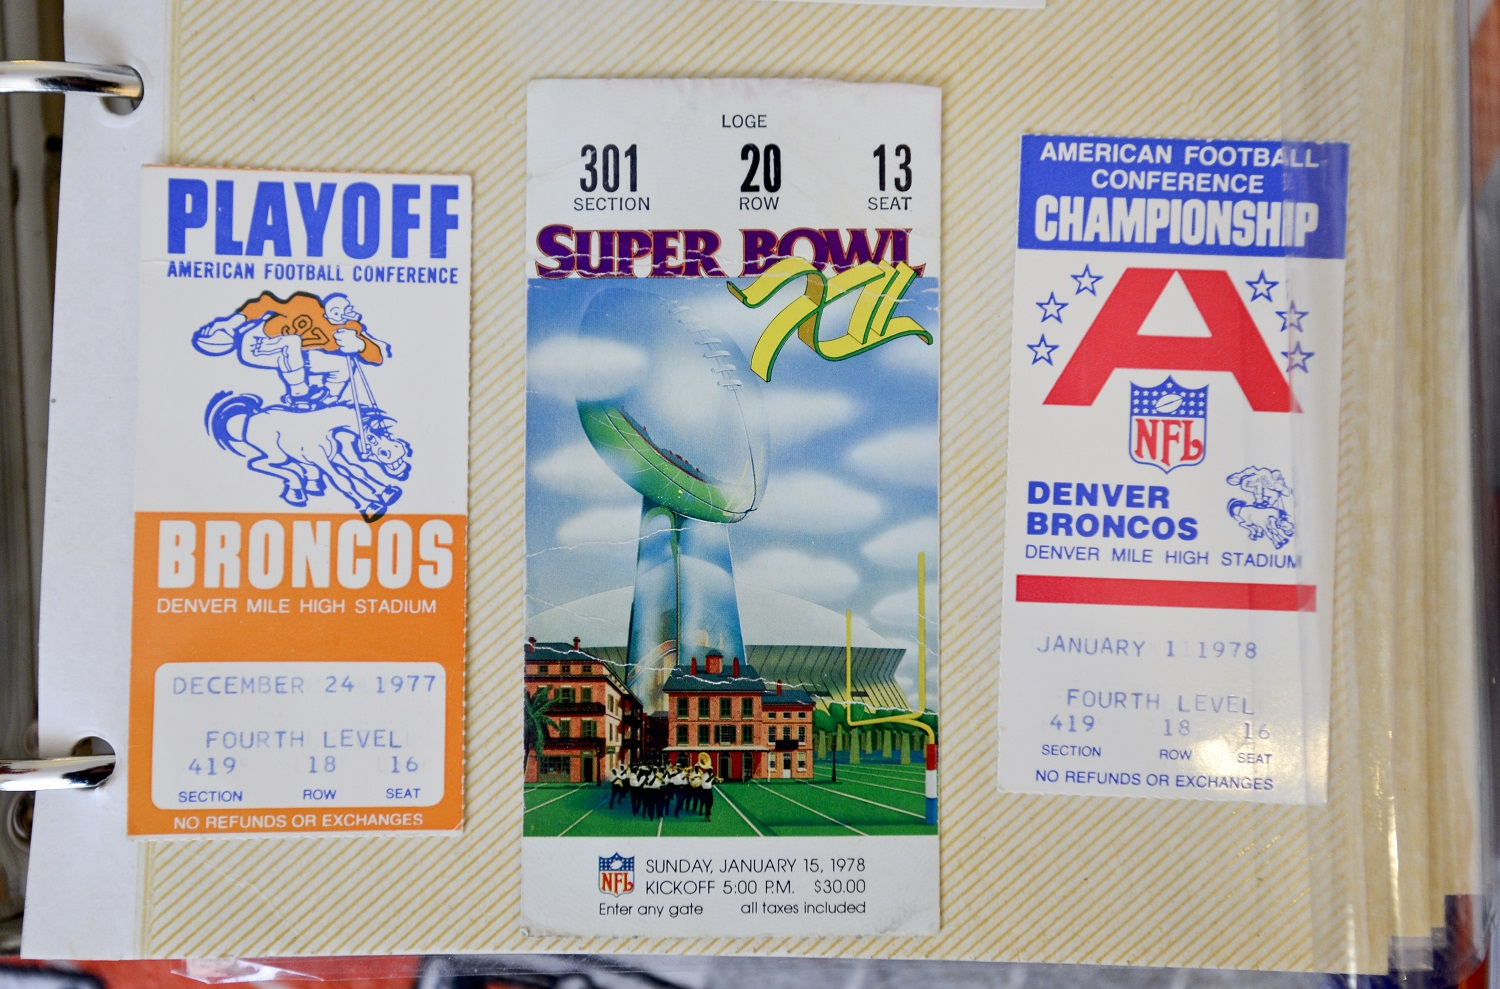 The NFL Is Mandating Digital Tickets, Stripping Treasured Souvenirs From Its Fans